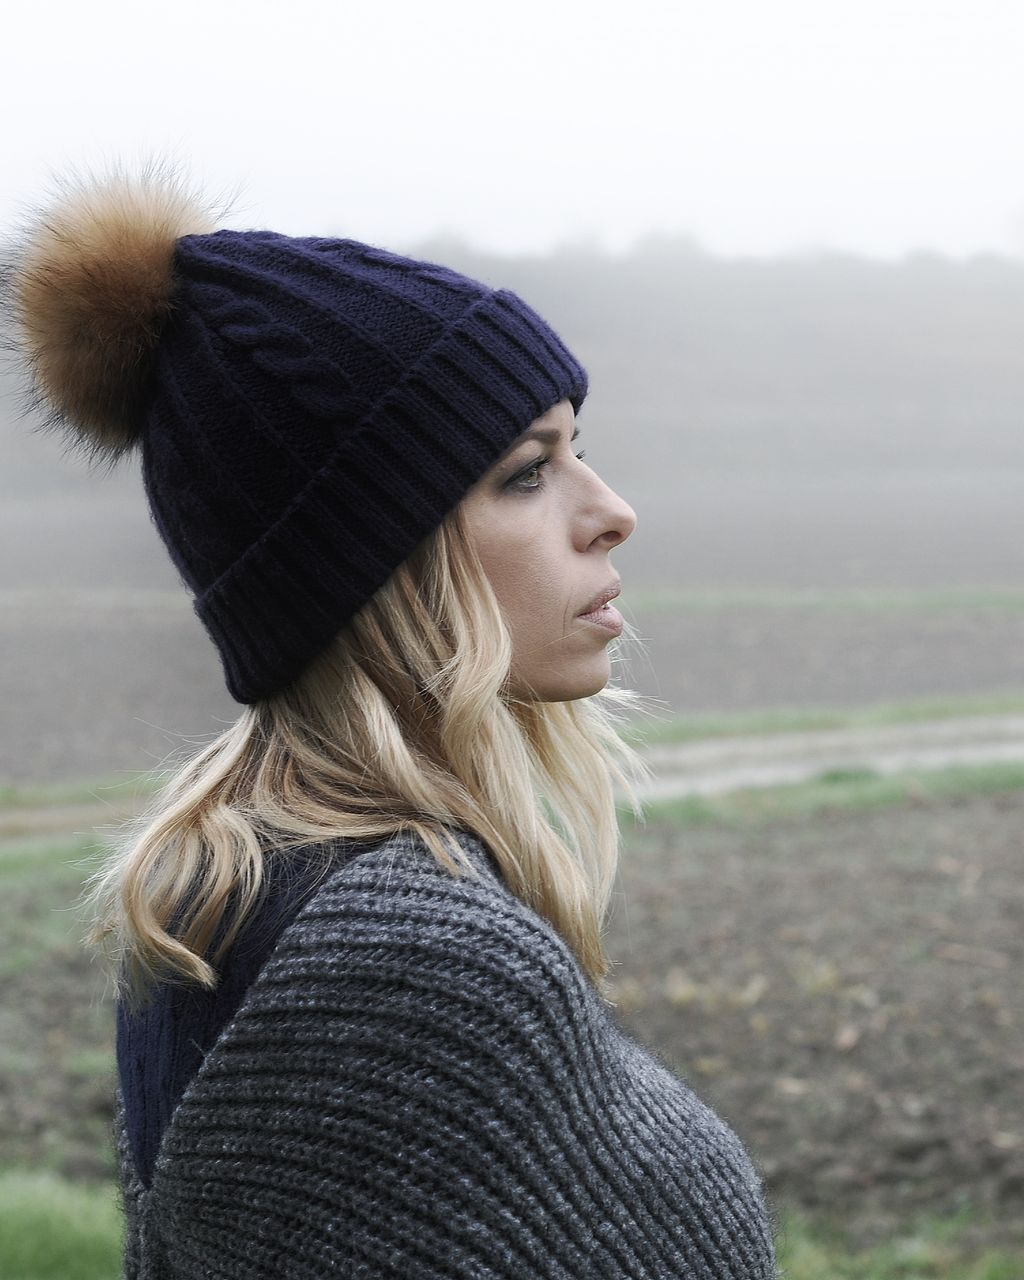 Close-up of woman looking away during winter